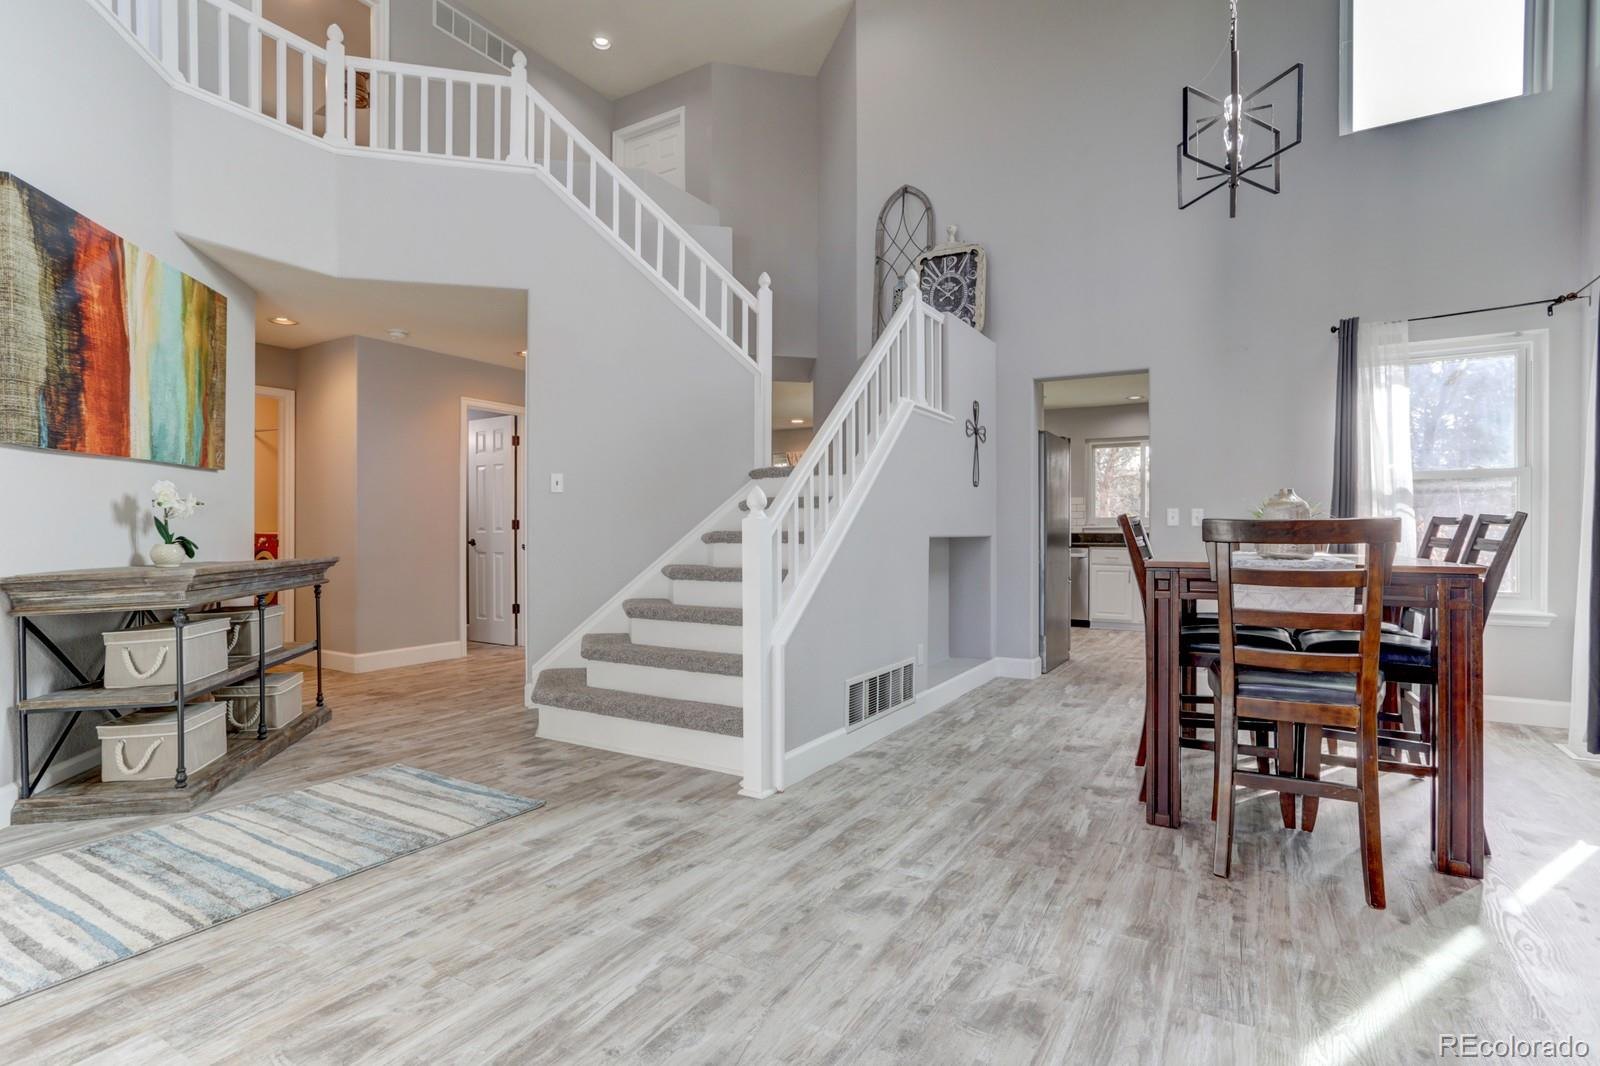 MLS# 3110413 - 3 - 9489 Wolfe Court, Highlands Ranch, CO 80129